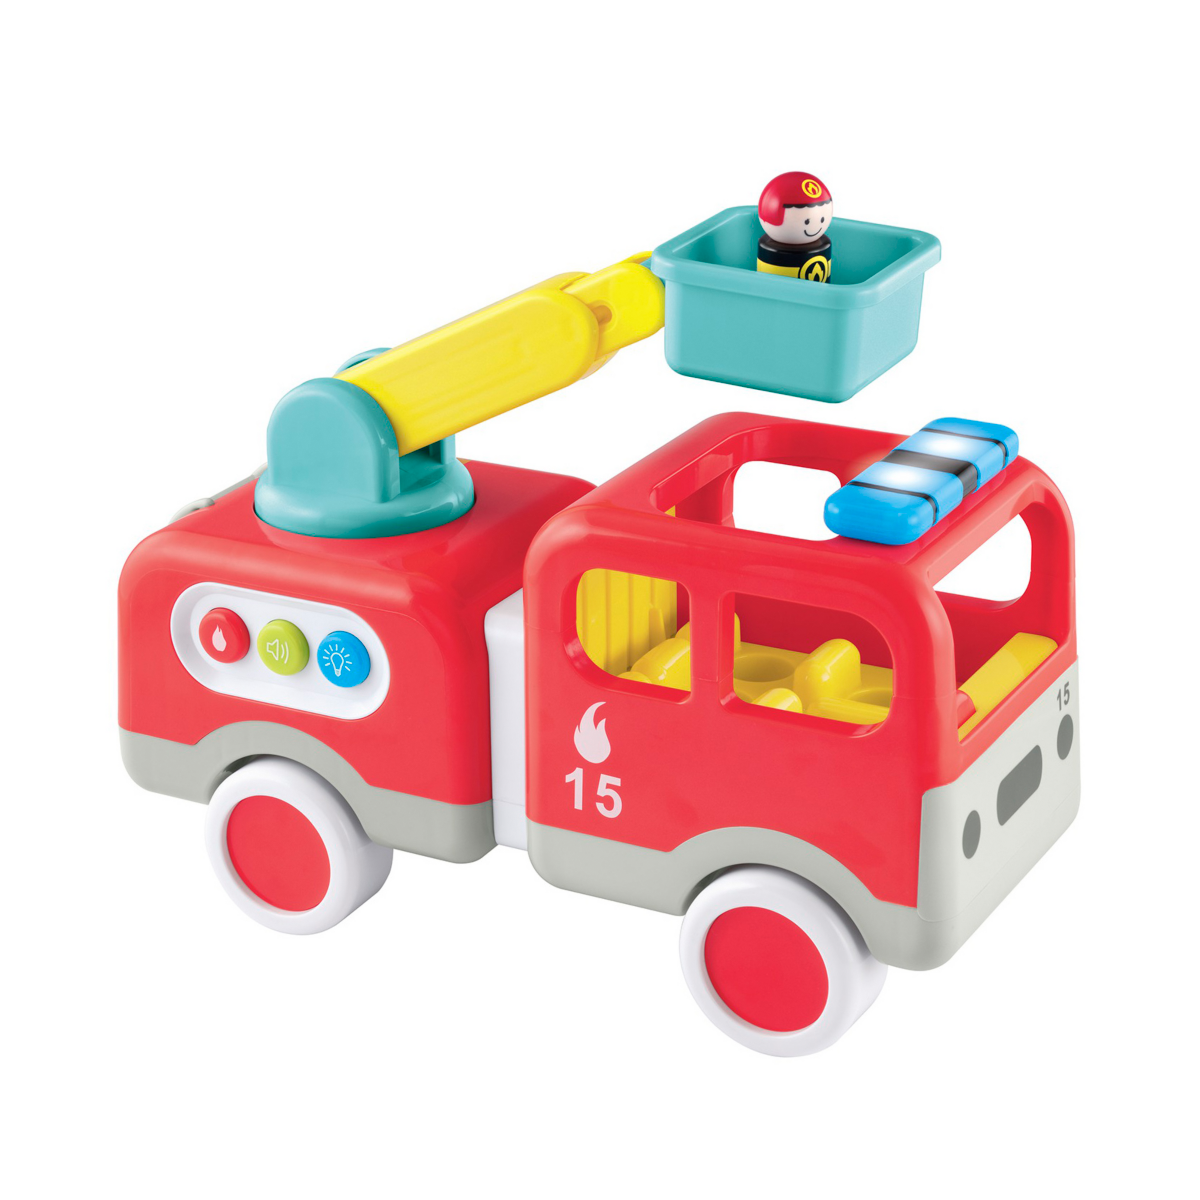 Whizz World Lights and Sounds Fire Engine from Early Learning Center